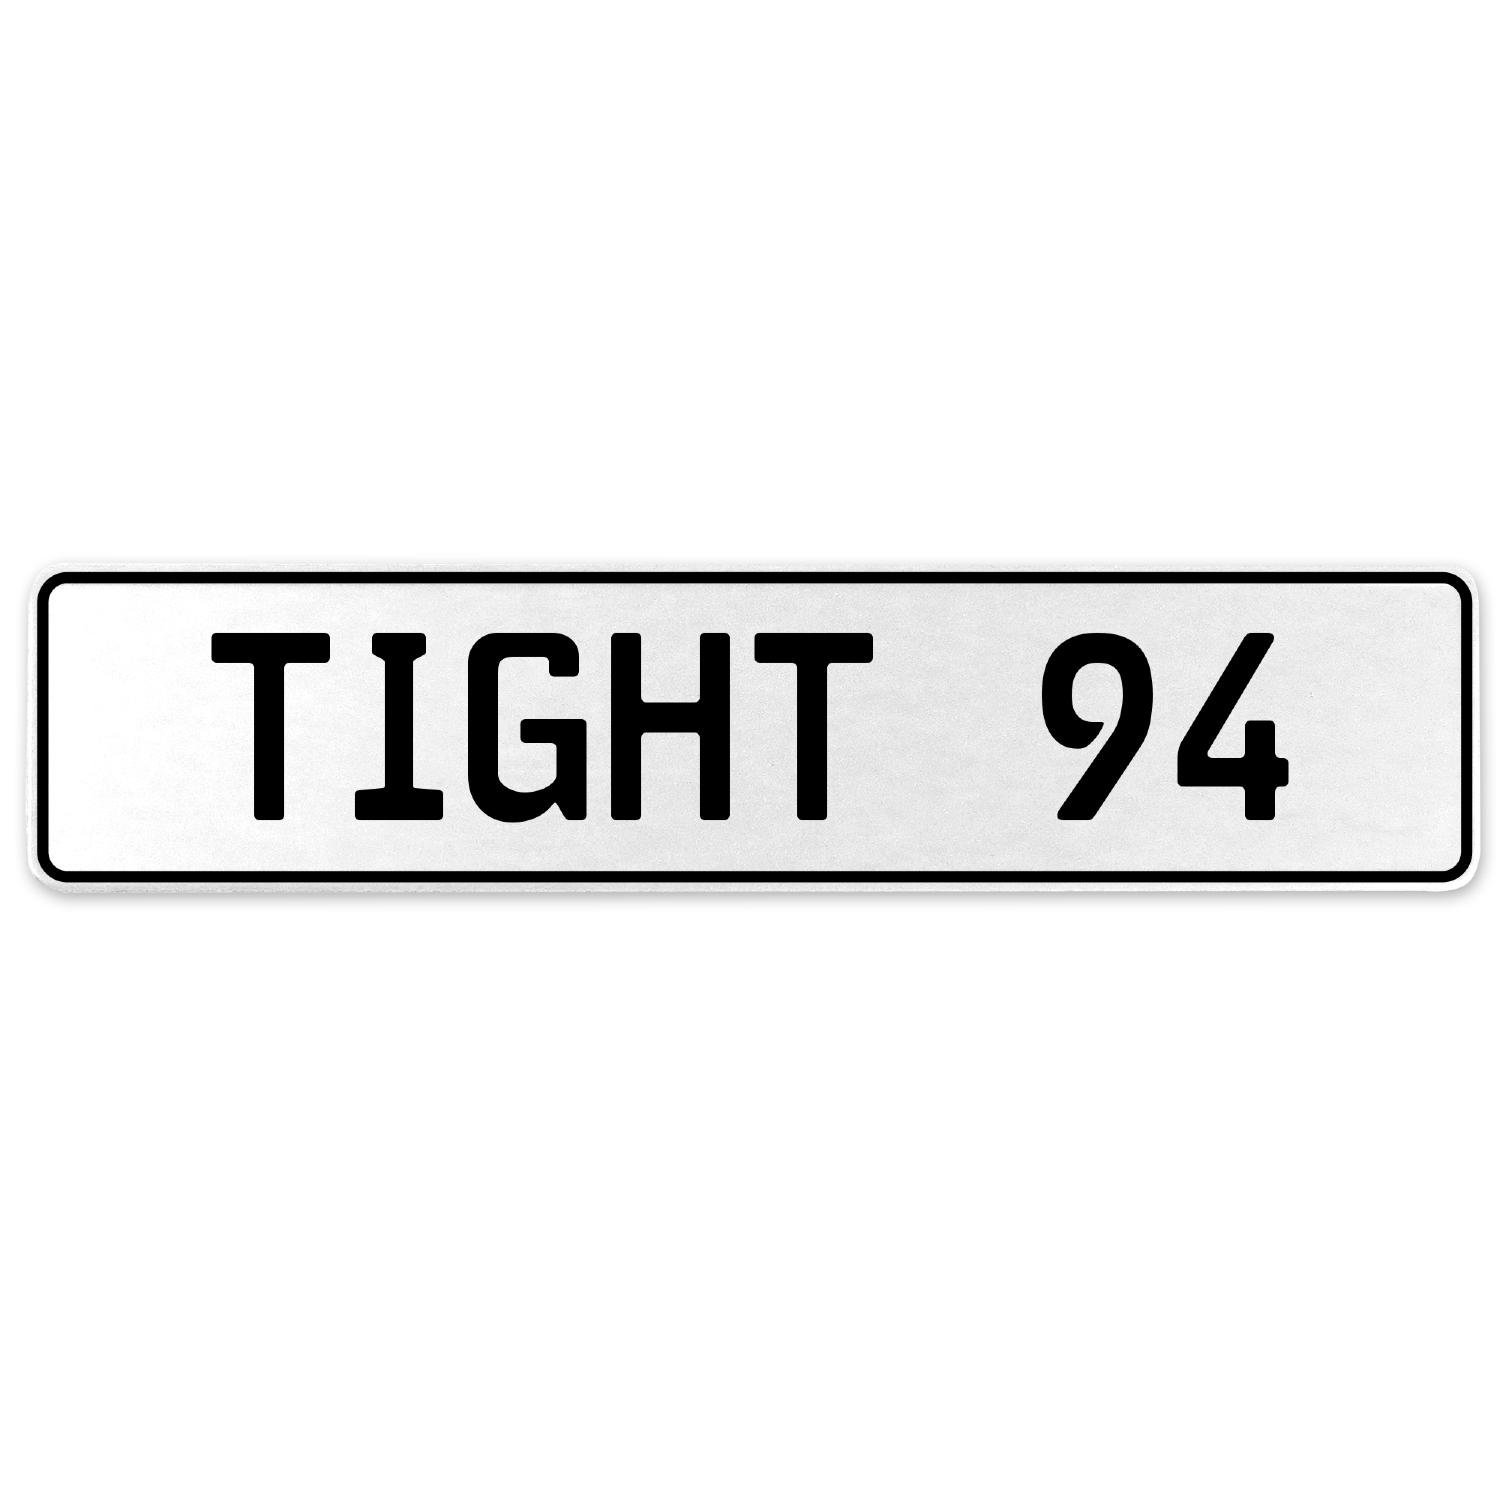 Vintage Parts 554790 Tight 94 White Stamped Aluminum European License Plate